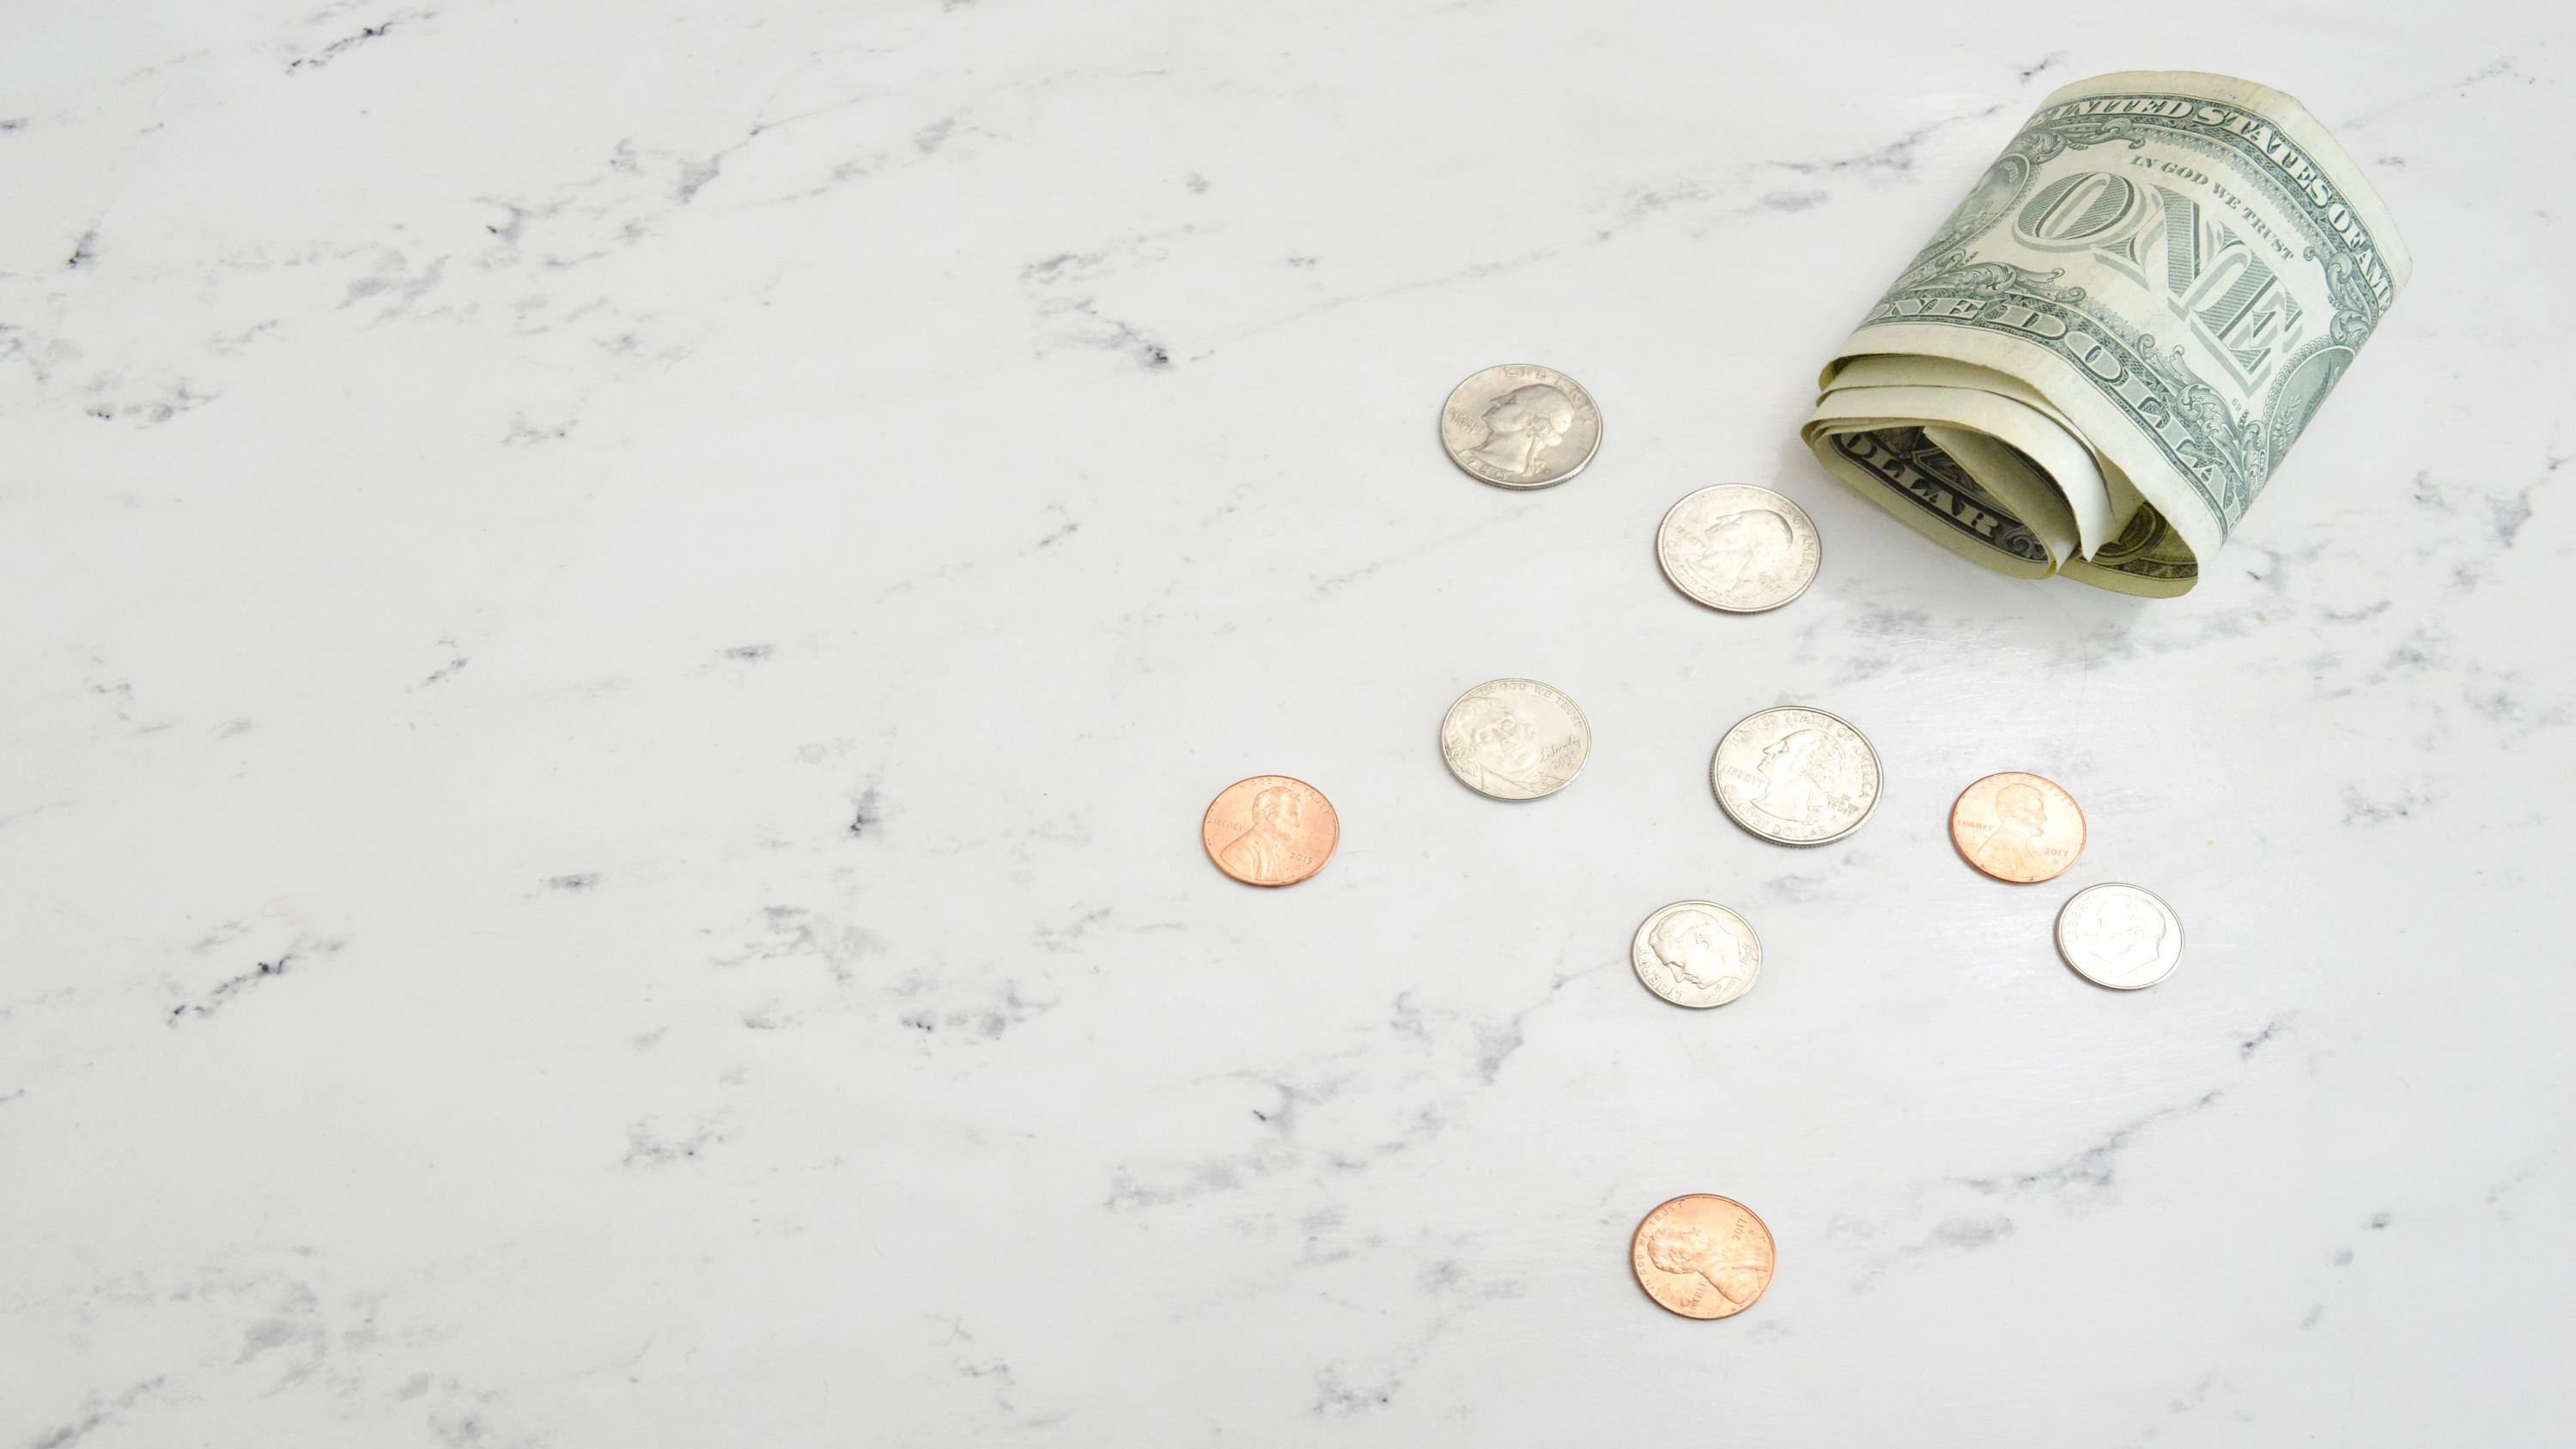 dollar bills with coins on table